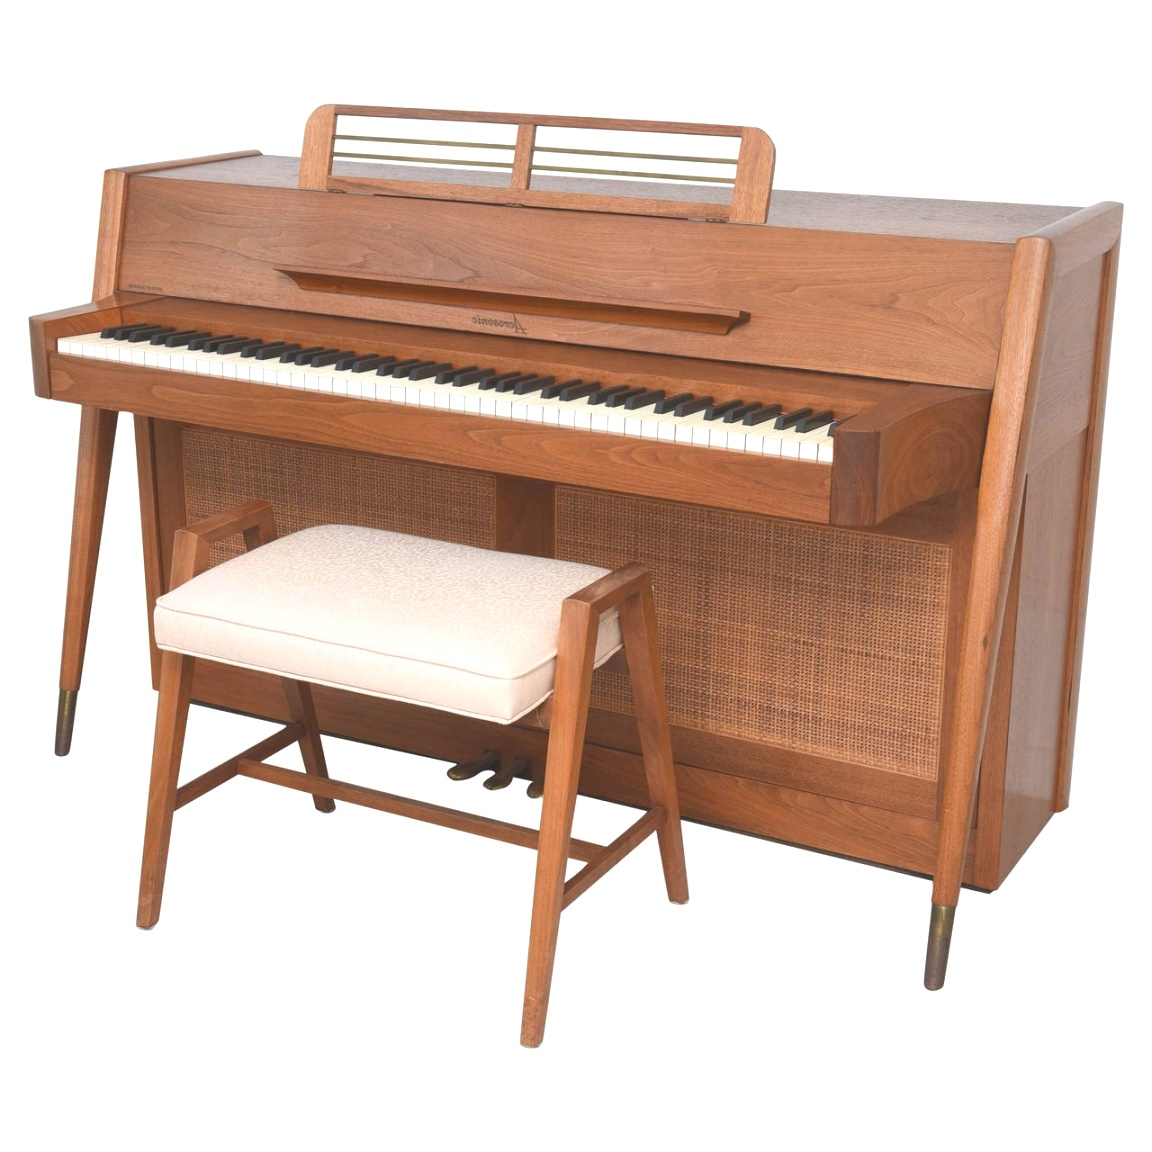 mid century modern piano | Mid-Century Modern Arcosonic Spinet Piano by Baldwin at 1stdibs | mid century modern piano